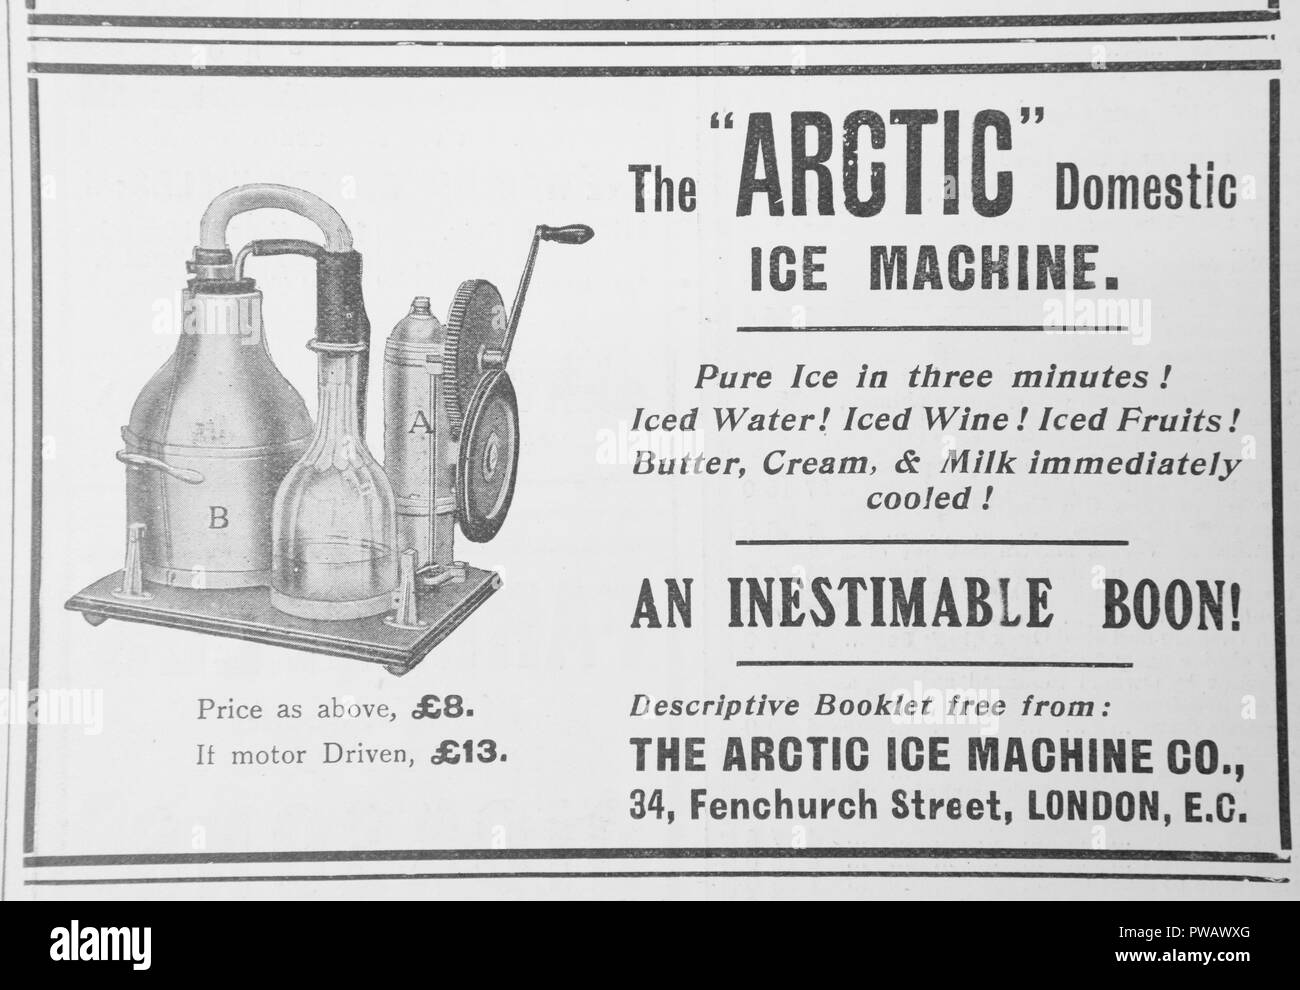 An advert for The Arctic domestic ice machine. From an old magazine from the 1914-1918 period. England UK GB - Stock Image